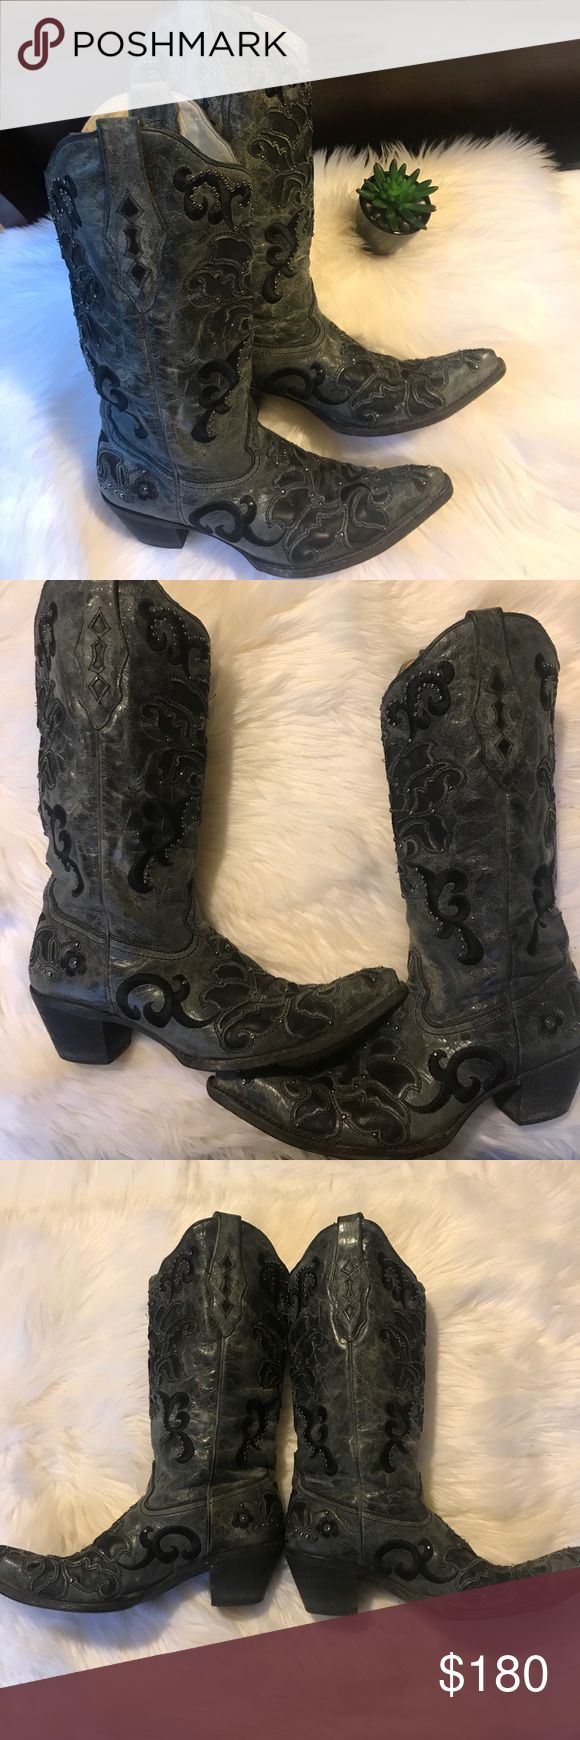 ✨ CORRAL Vintage Boots |  Authentic + Distressed ✨ 🌵 Gorgeous Corral Vintage Boots | Distressed gray, embellished with gray studs, black embroidery, and beautiful leather inlays | I LOVE these boots, but I don't wear them enough to justify the investment. My loss is your gain. Worn fewer than 10 times total | I don't see any missing studs or notable non-factory wear, but please zoom in on pictures to inspect before purchasing. ❌ No trades ✔️ Bundle and save! Corral Shoes